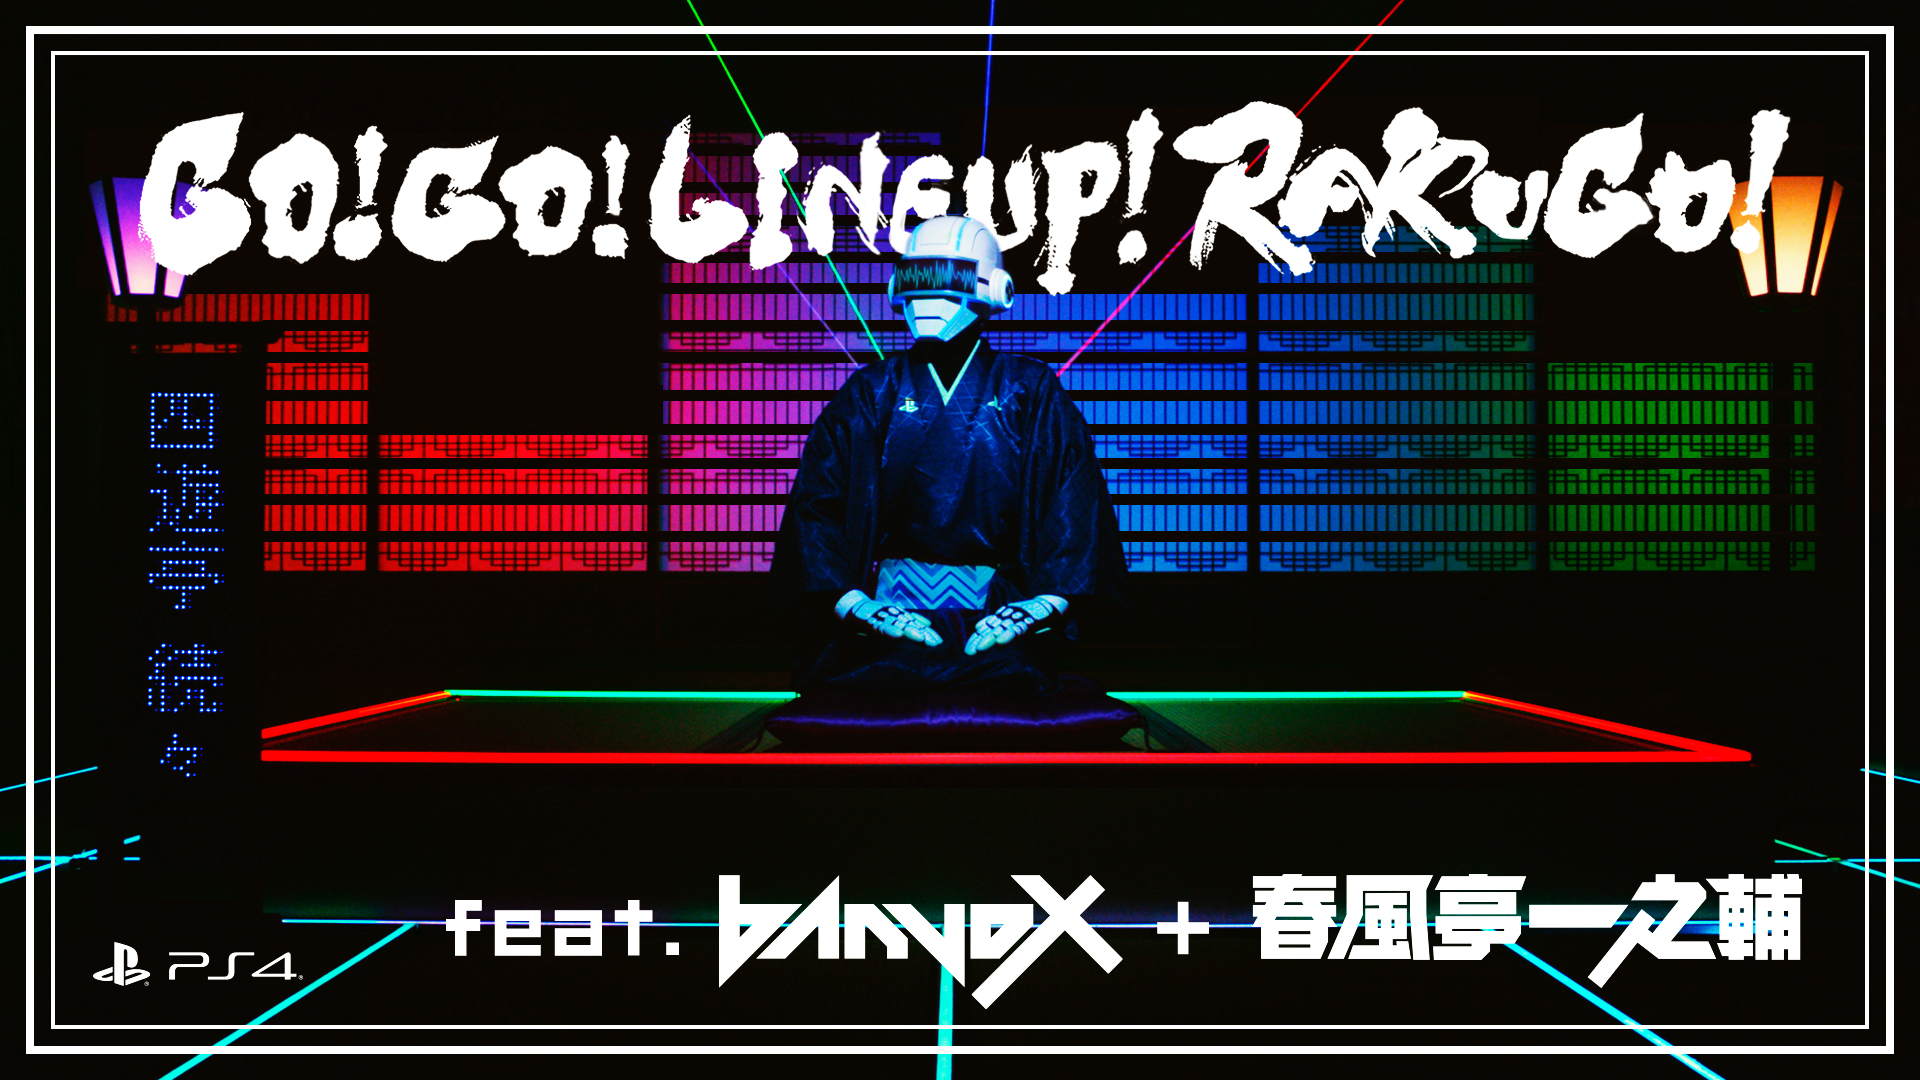 PS4 presents「GO! GO! LINEUP! RAKUGO!」#banvox #春風亭一之輔